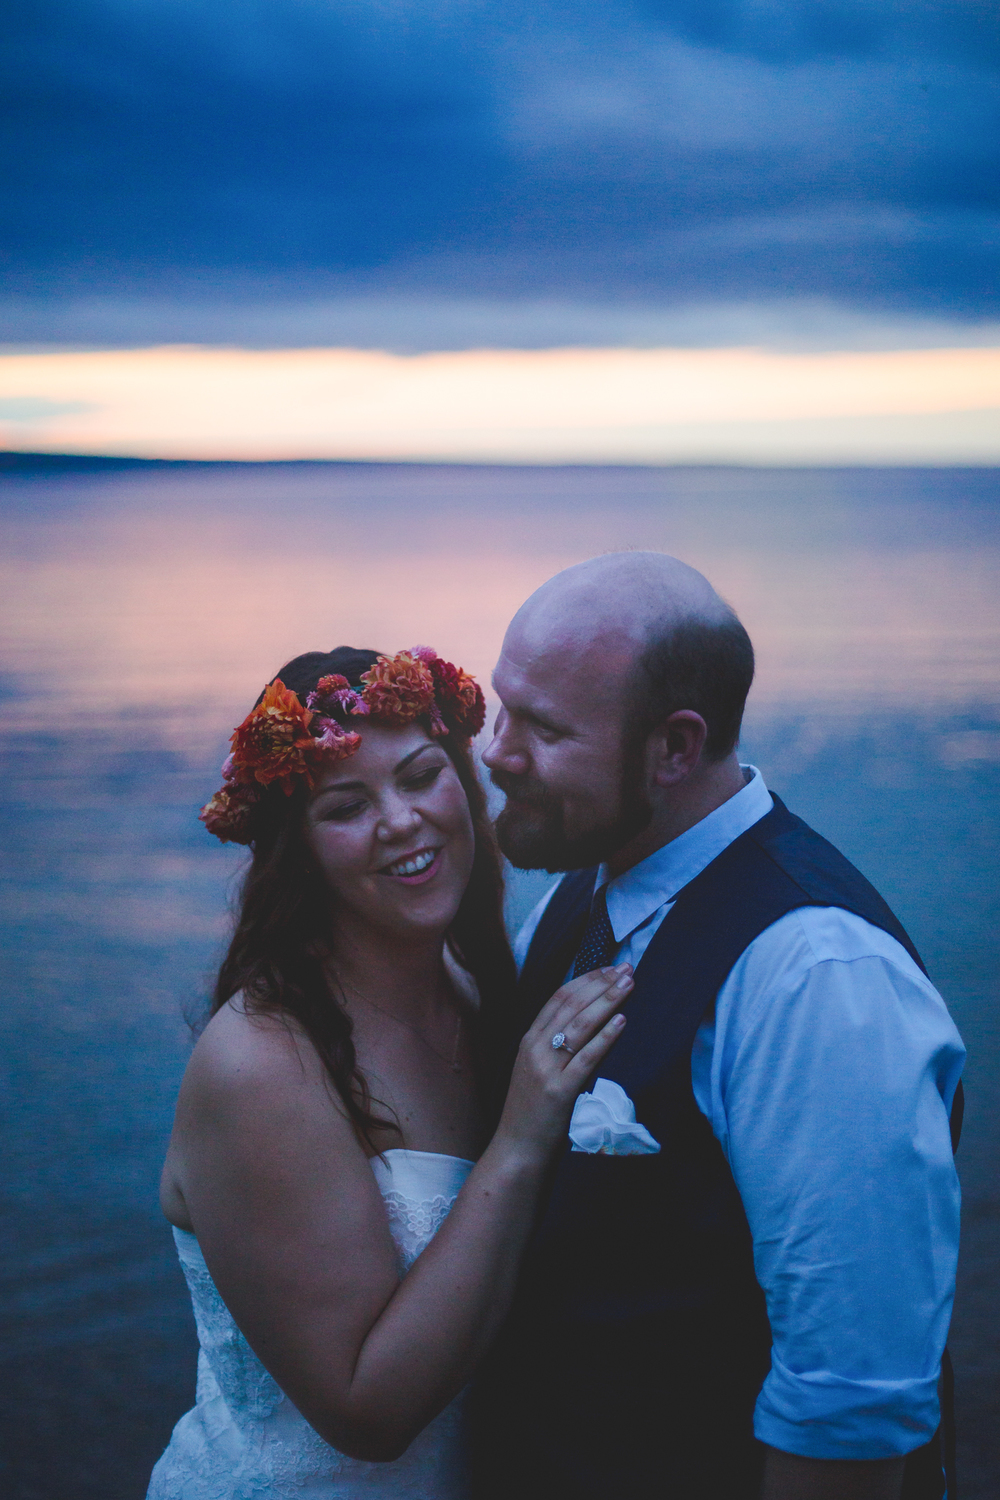 laughing-bride-groom-sunset-tiffany-roy